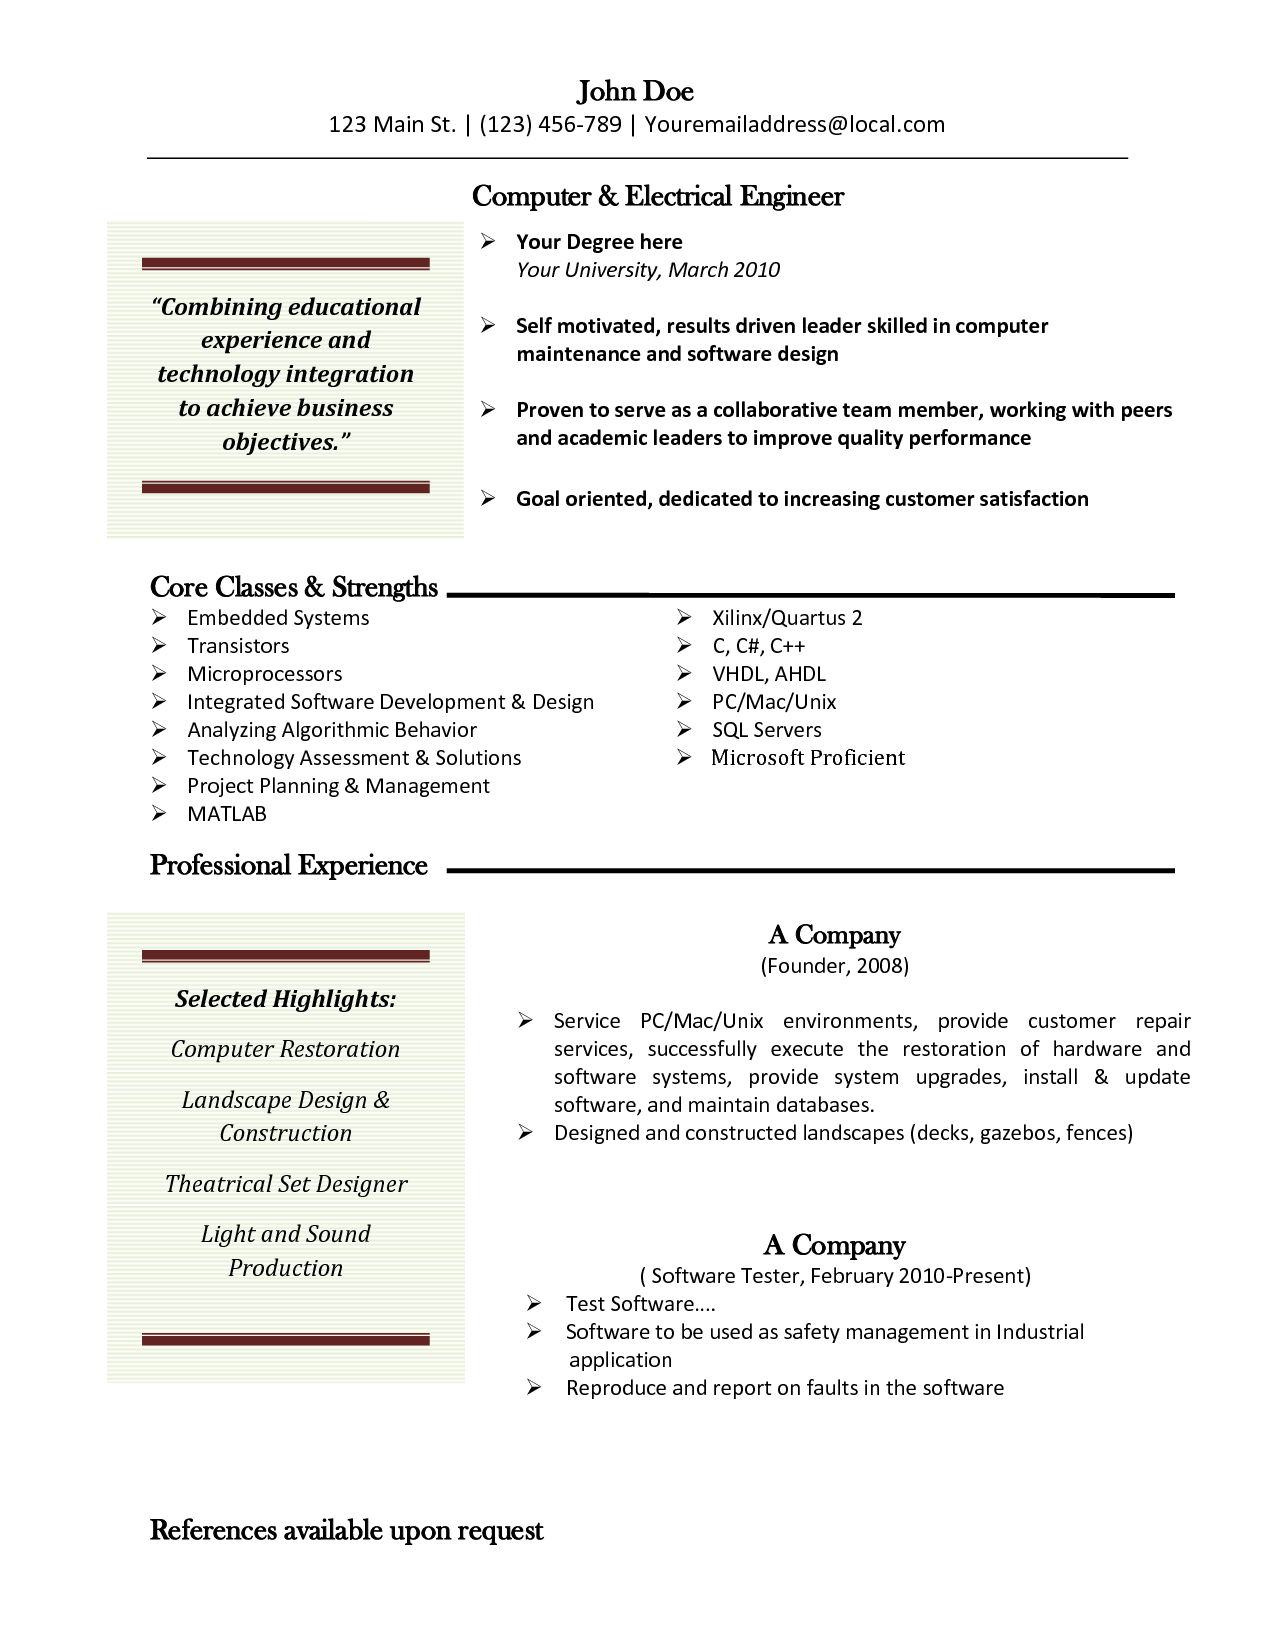 Resume Templates For Free Freeresumetemplatesformaccqjykibi 1275×1650  Cover